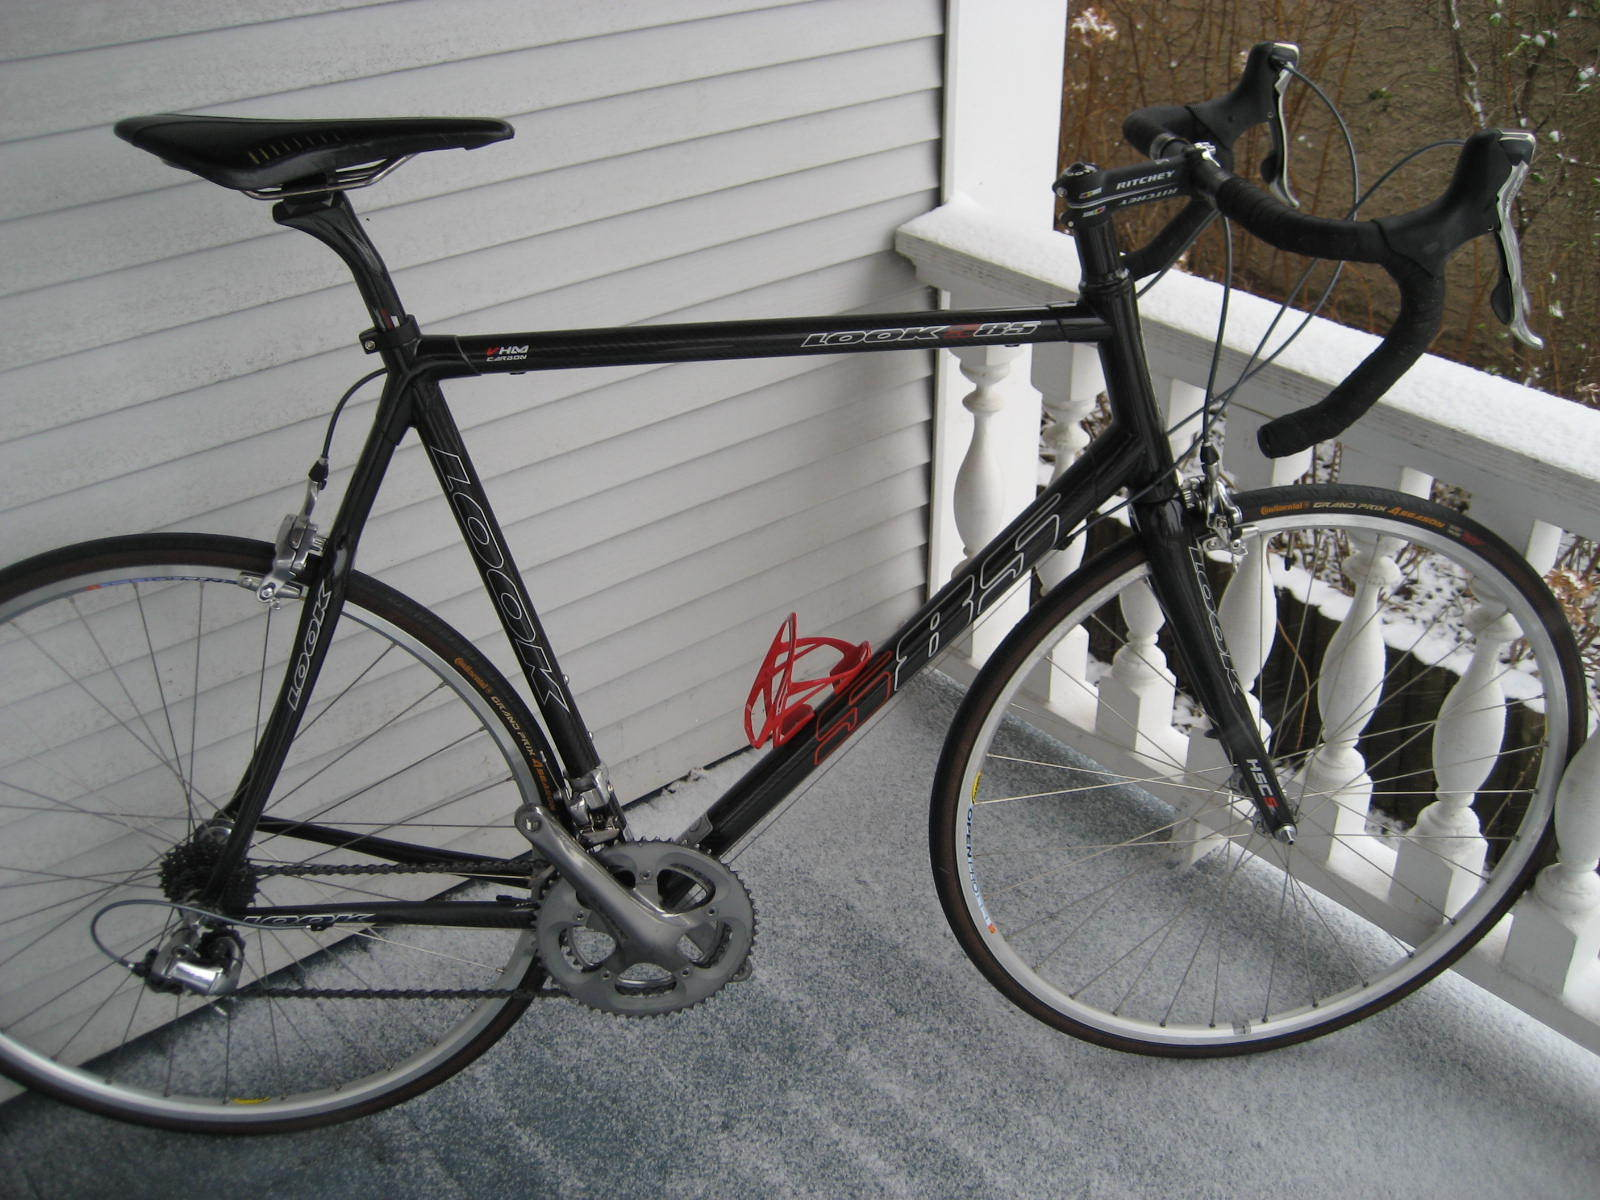 99142028a21 This post is probably illegal since this bike is only 10 years old and it  is not steel. My other 16 bikes are all vintage steel.